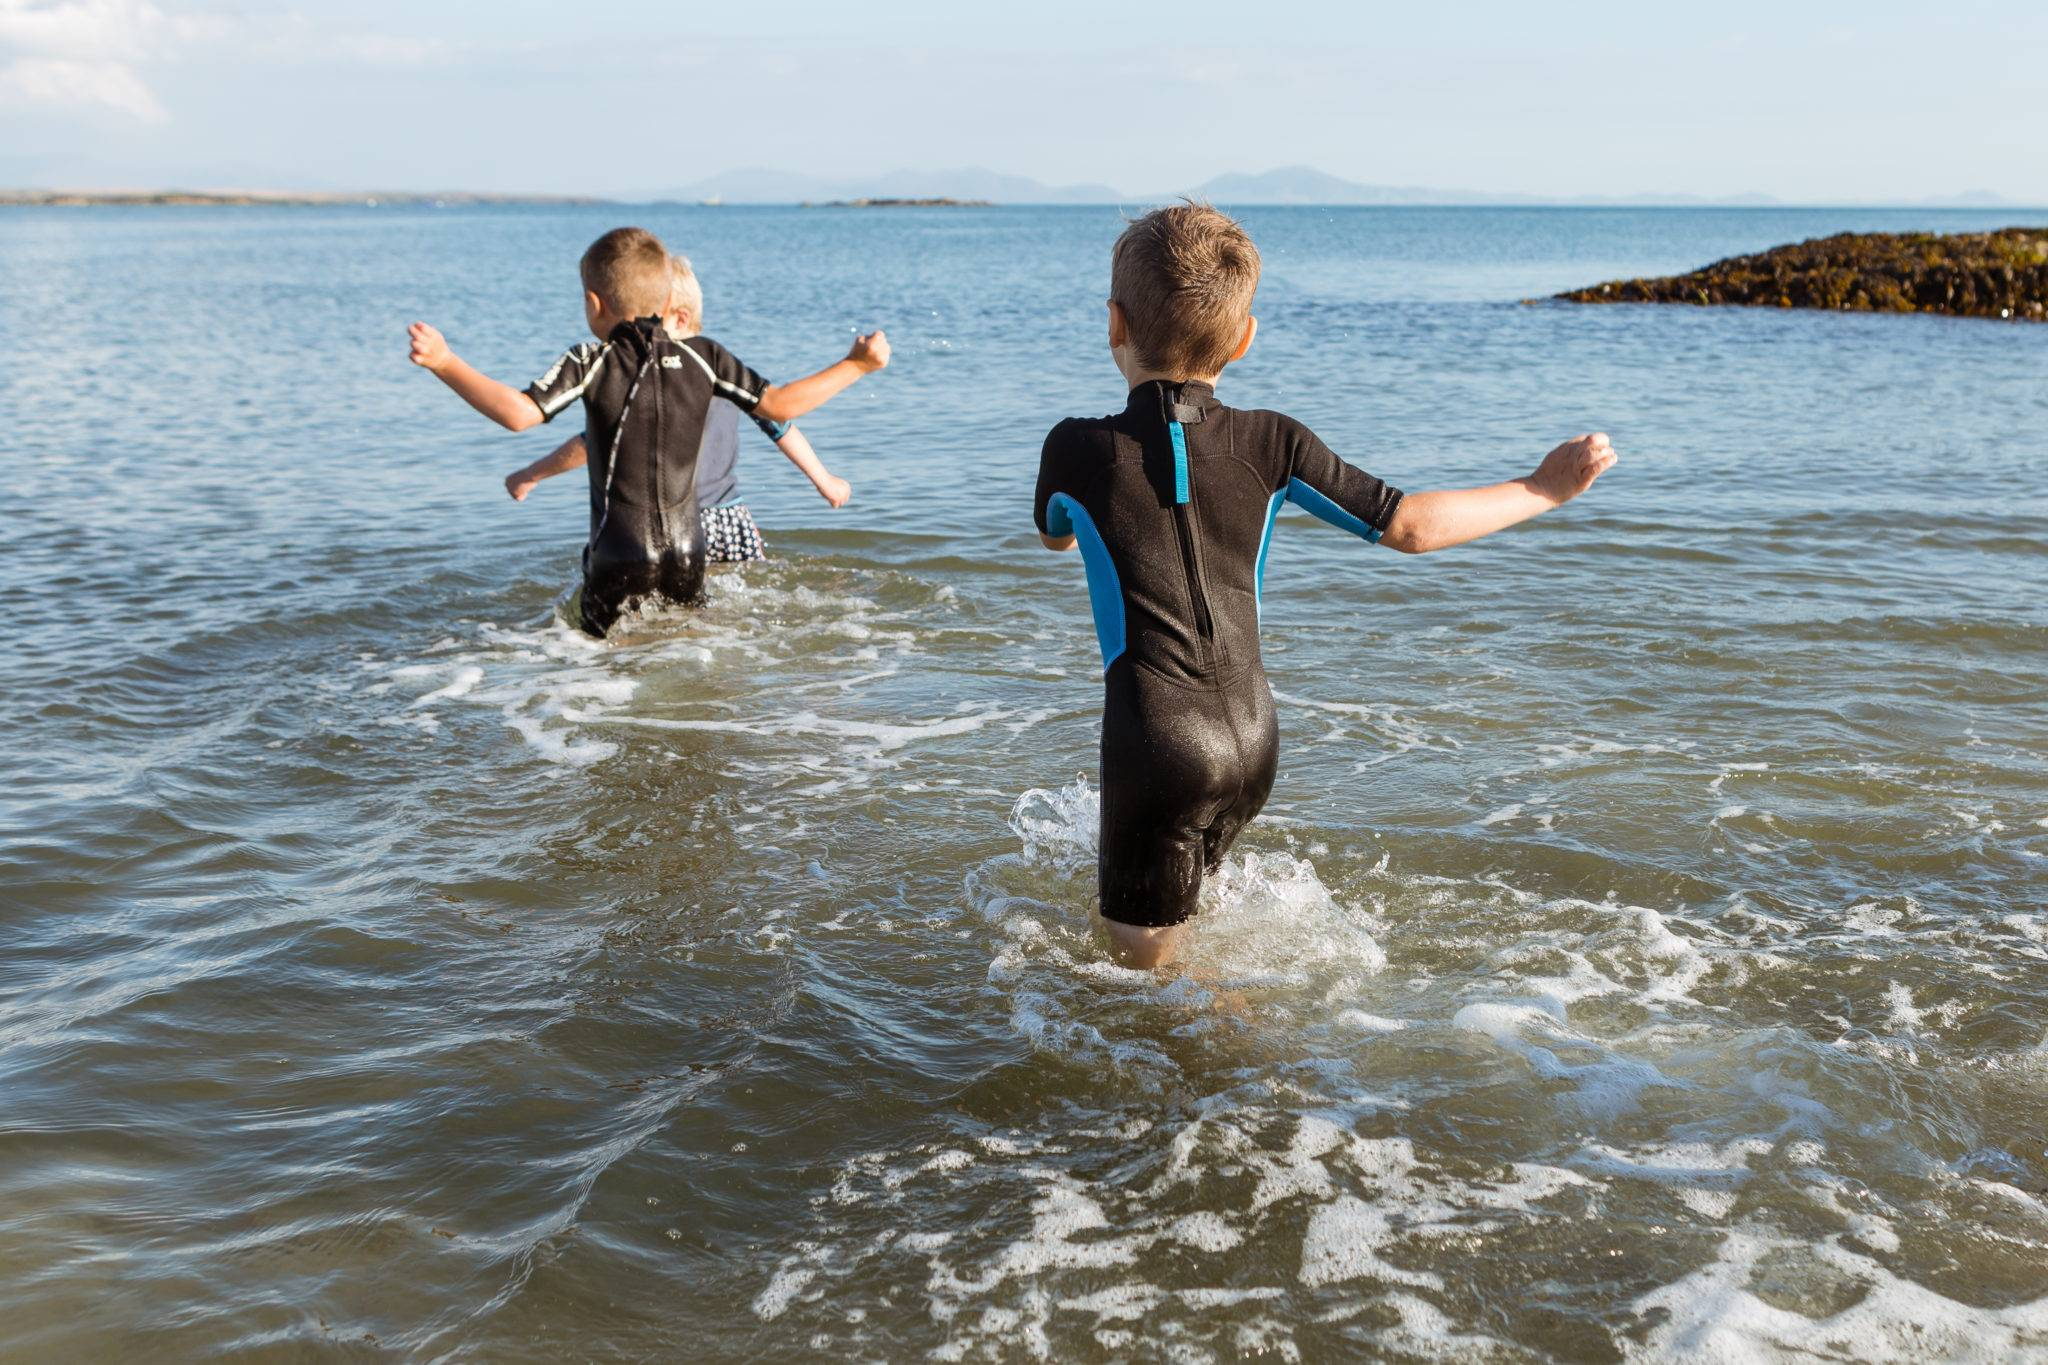 https://silverbay.co.uk/wp-content/uploads/2015/09/silver-bay-holiday-village-anglesey-playing-ocean-children.jpg